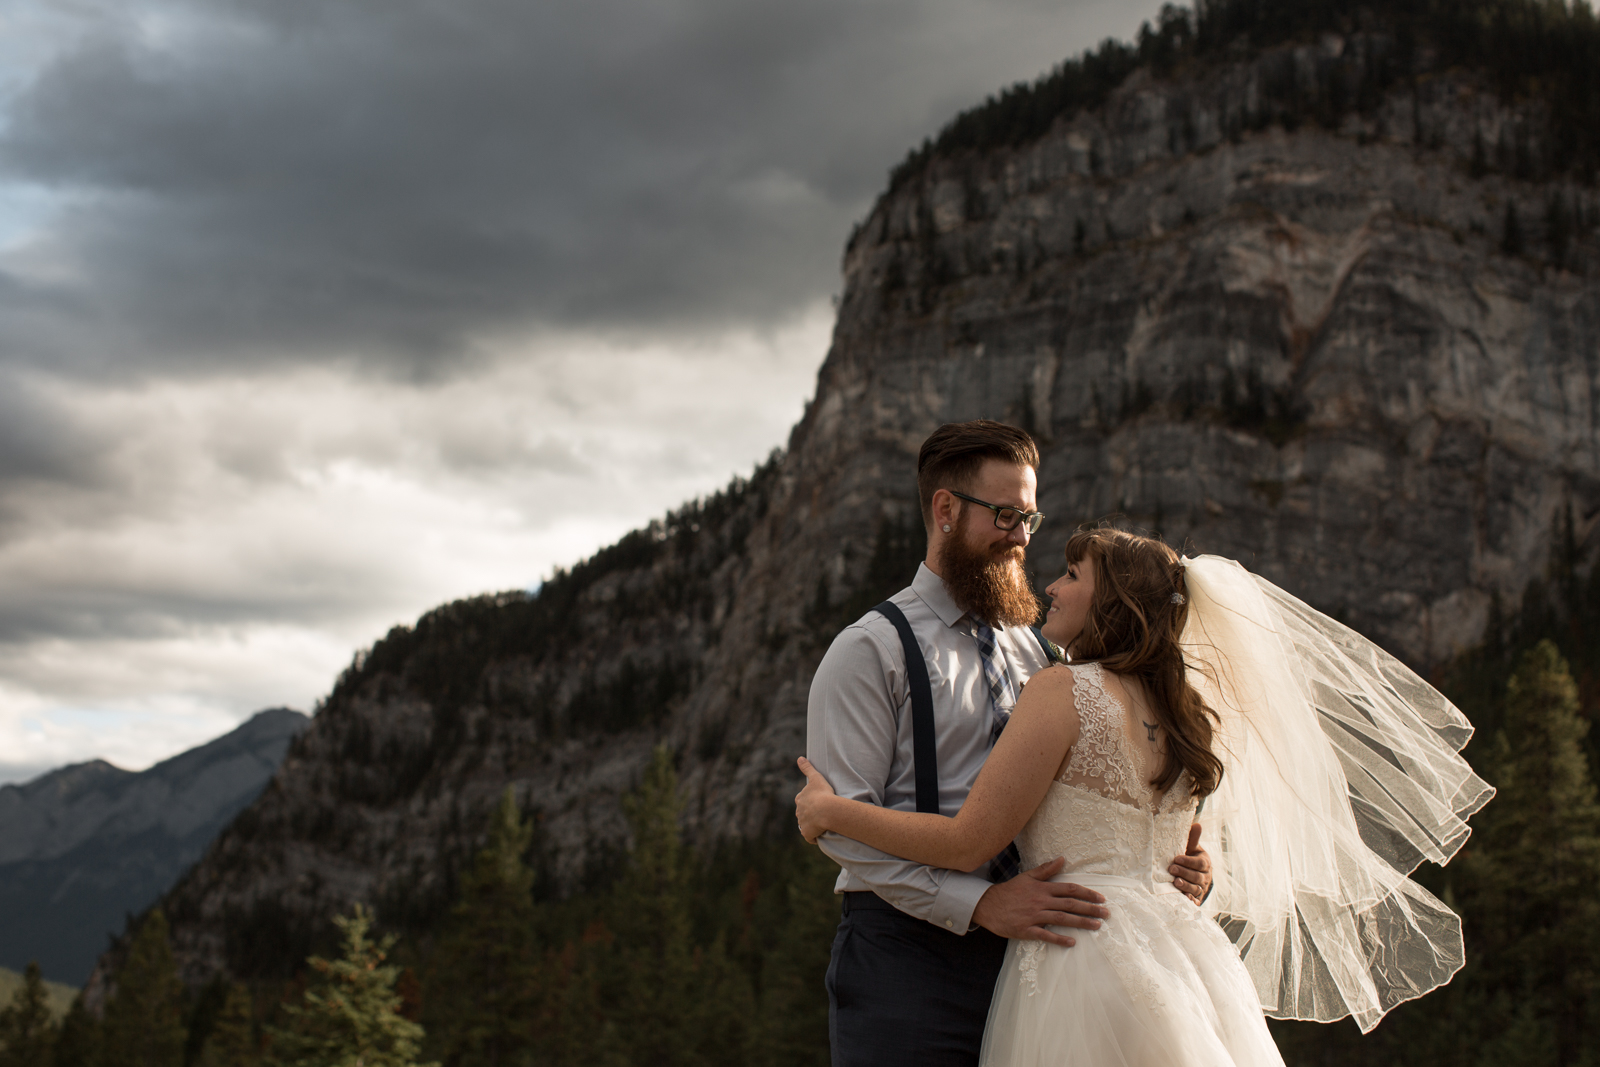 43-willow_and_wolf_photography_stephanie_and_kyle_banff_wedding_blogbec_9183